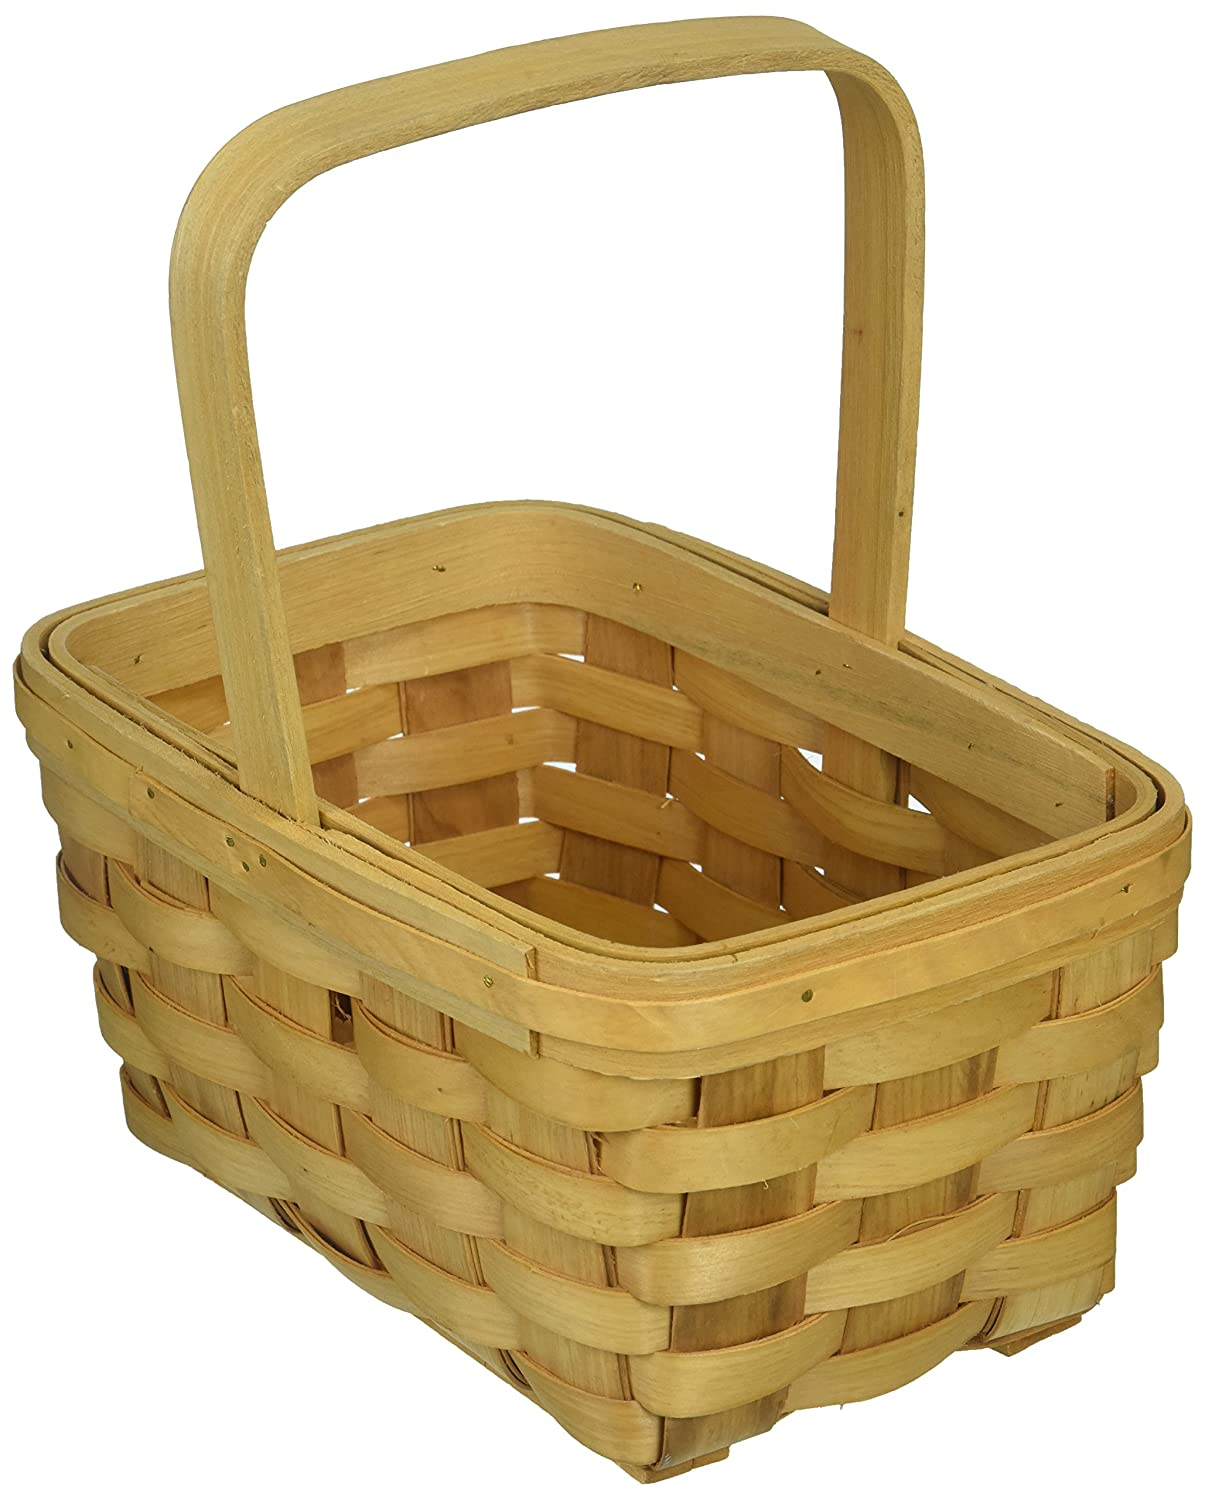 Darice 2848-22 Wood Basket 8.5, Wood Country Basket with Fixed Handle